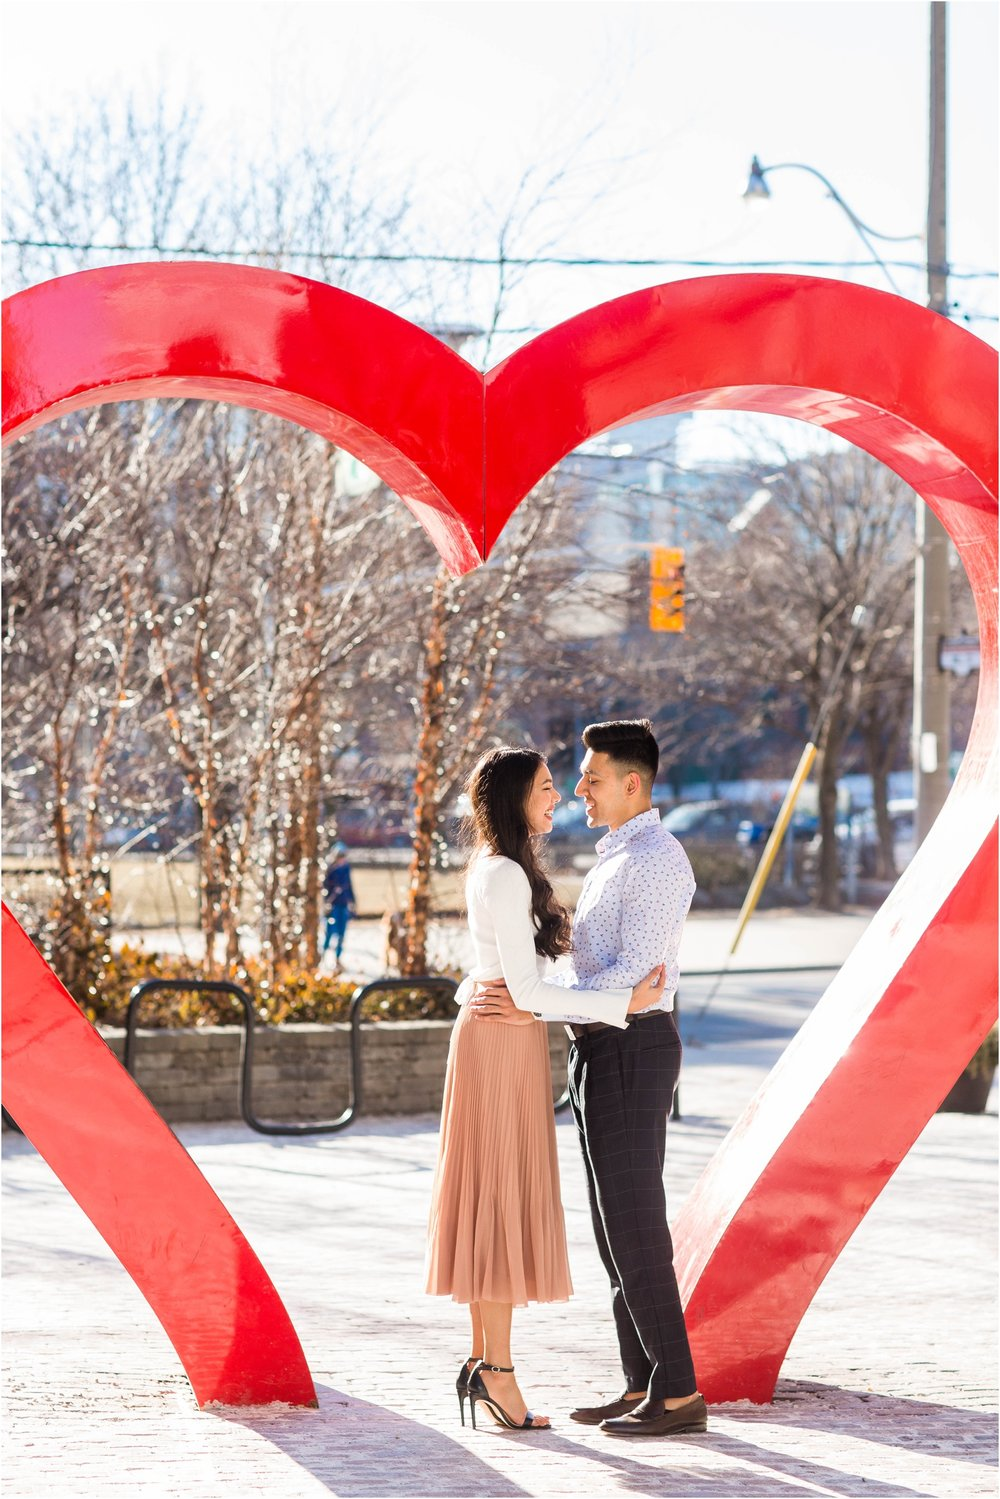 Distillery-District-Finanical-District-Downtown-Engagement-Session-Toronto-Mississauga-Brampton-Scarborough-GTA-Pakistani-Indian-Wedding-Engagement-Photographer-Photography_0002.jpg